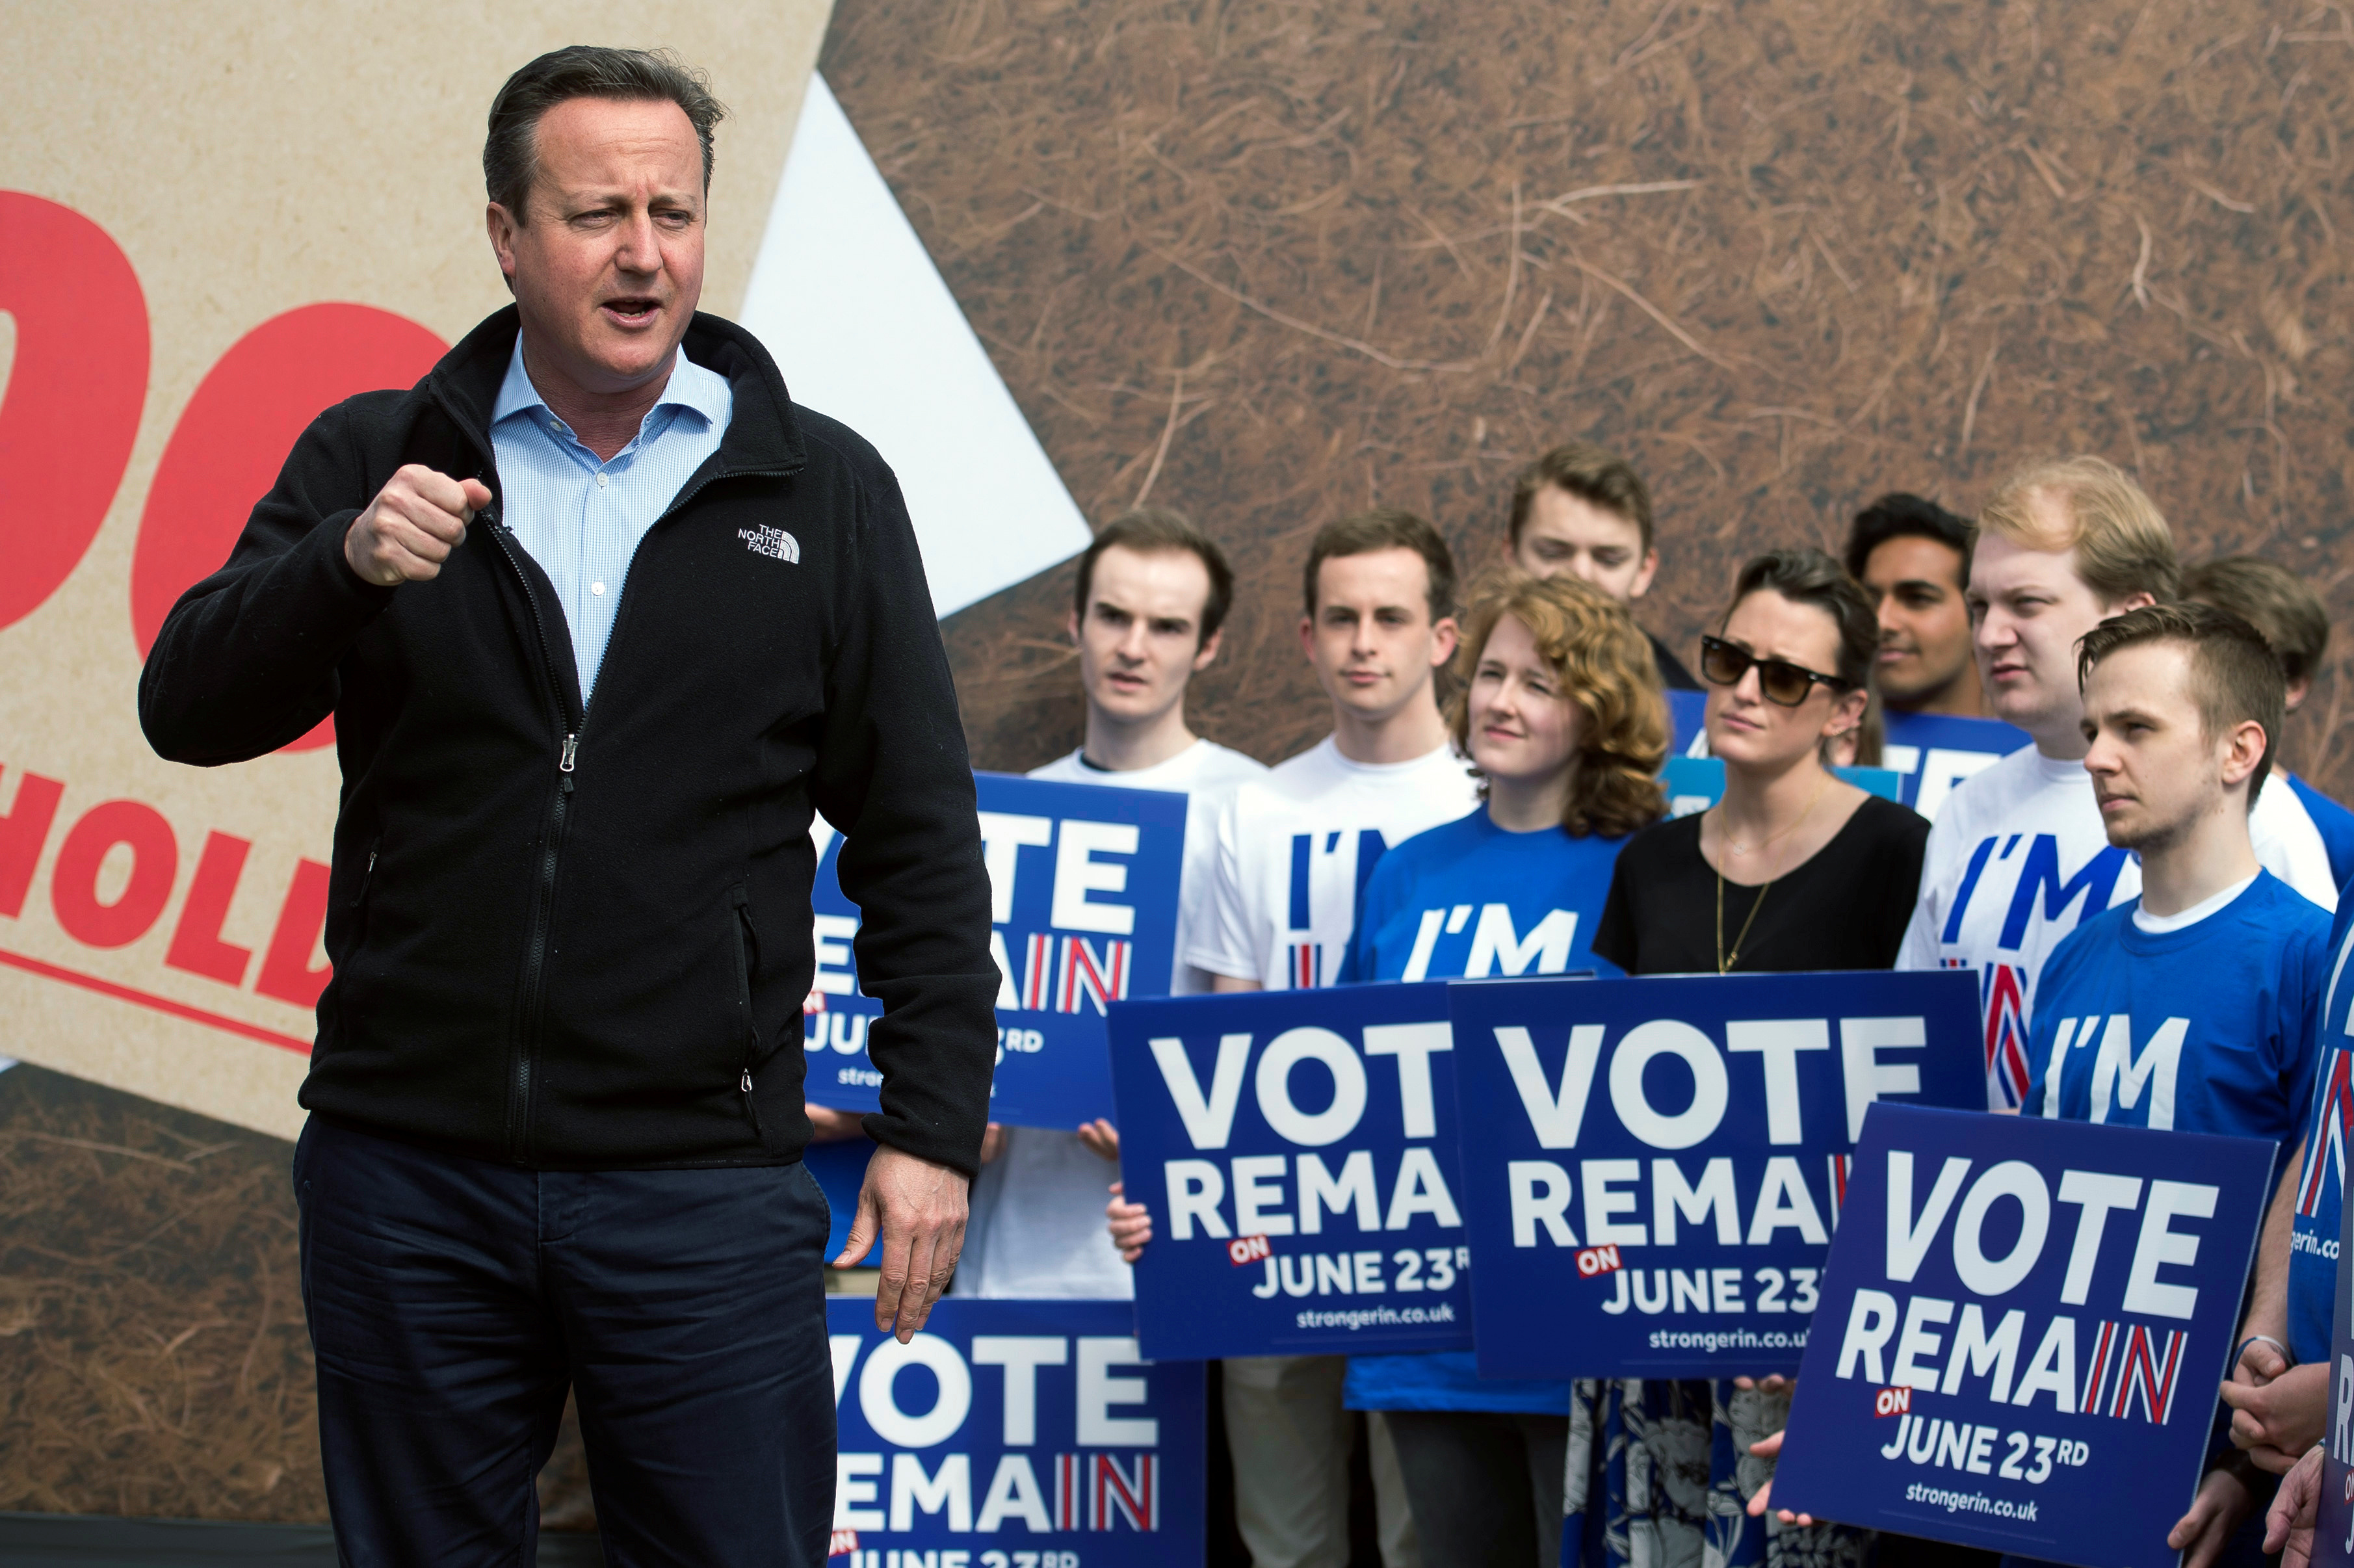 """British Prime Minister David Cameron delivers a speech to supporters of the """"Stronger In"""" campaign event in Witney, Oxfordshire, England, May 14, 2016."""